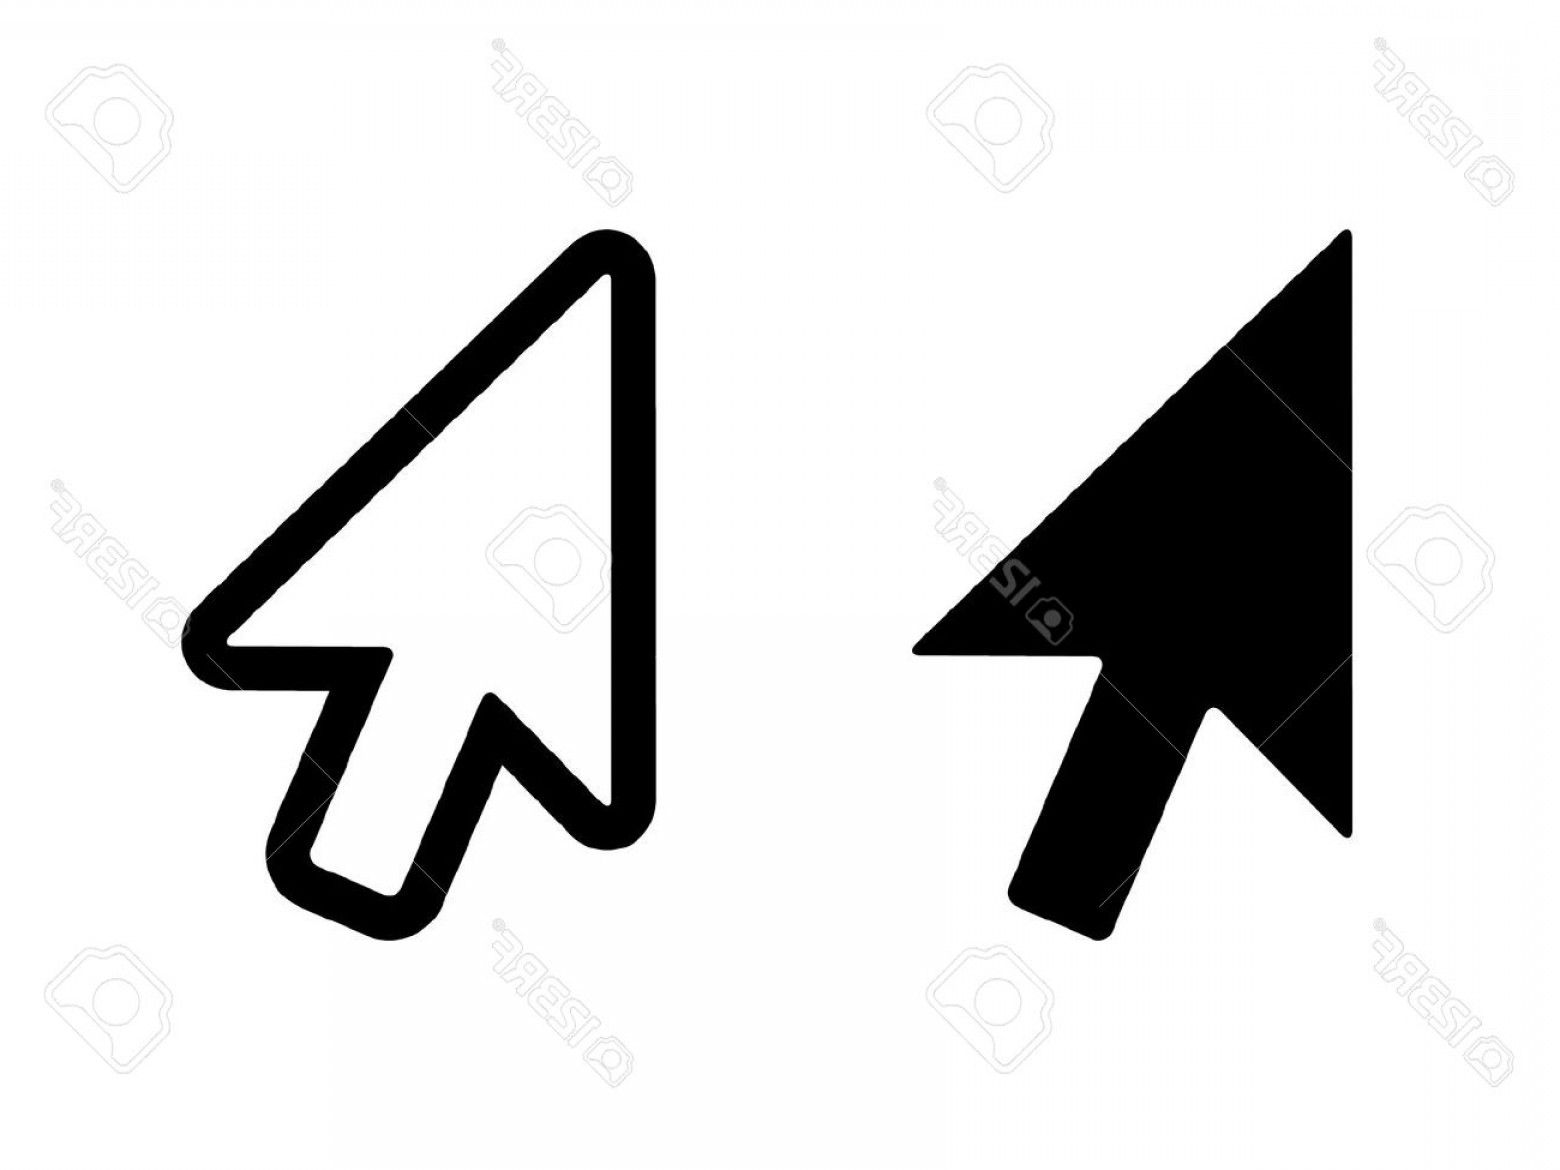 Computer Pointer Vector: Photostock Vector Computer Mouse Click Pointer Cursor Arrow Flat Icon For Apps And Websites